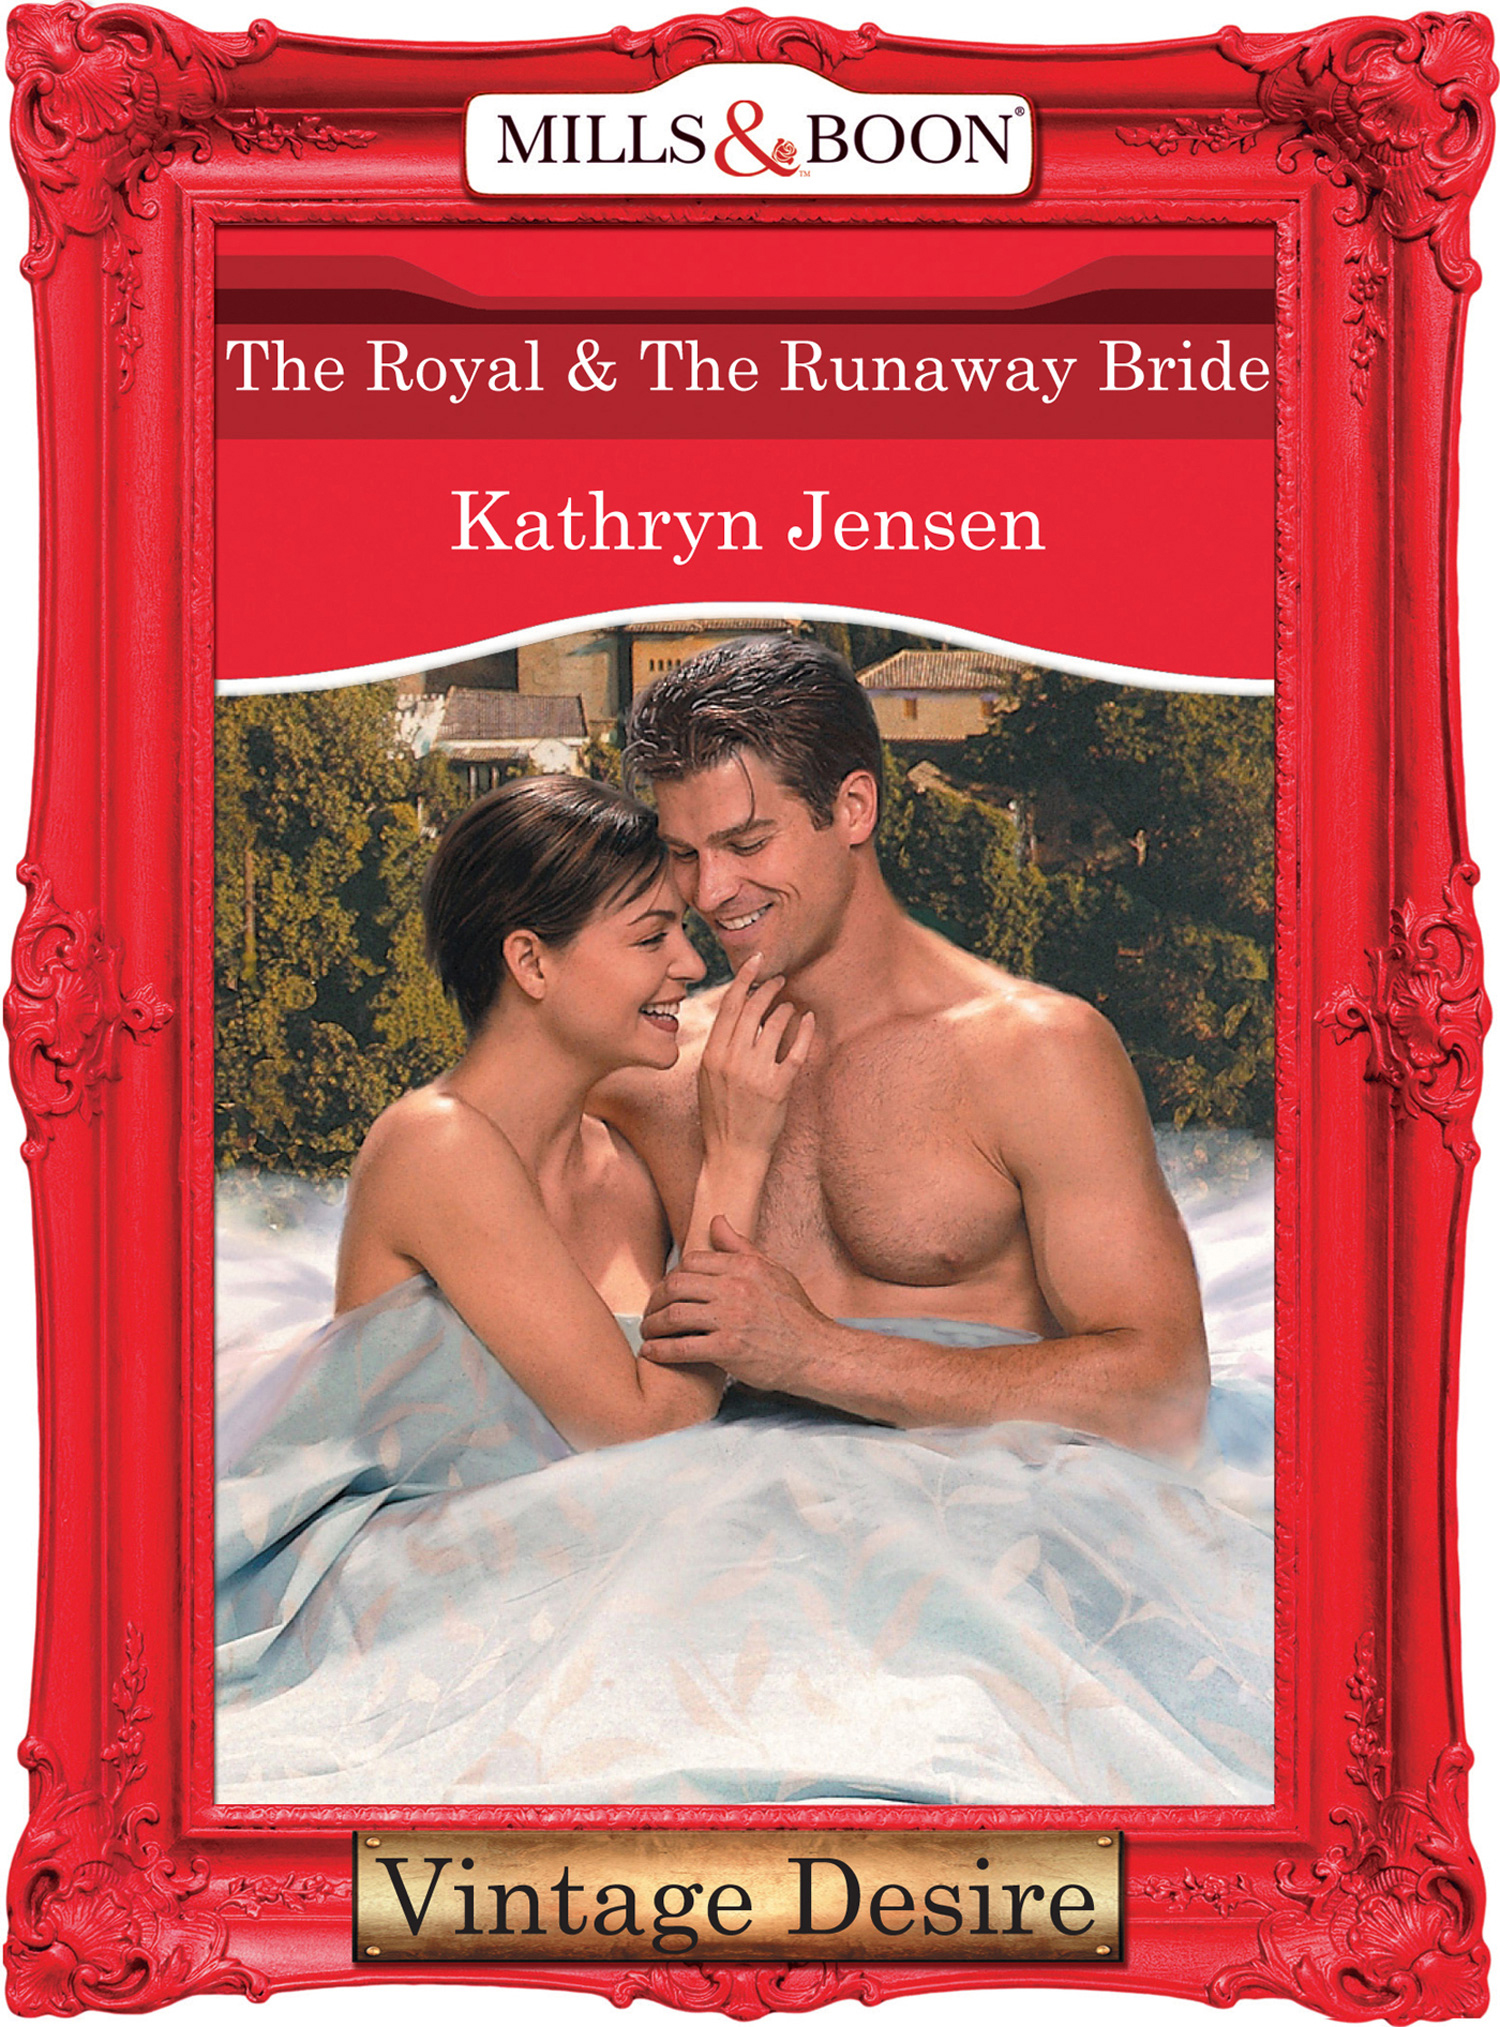 The Royal and The Runaway Bride